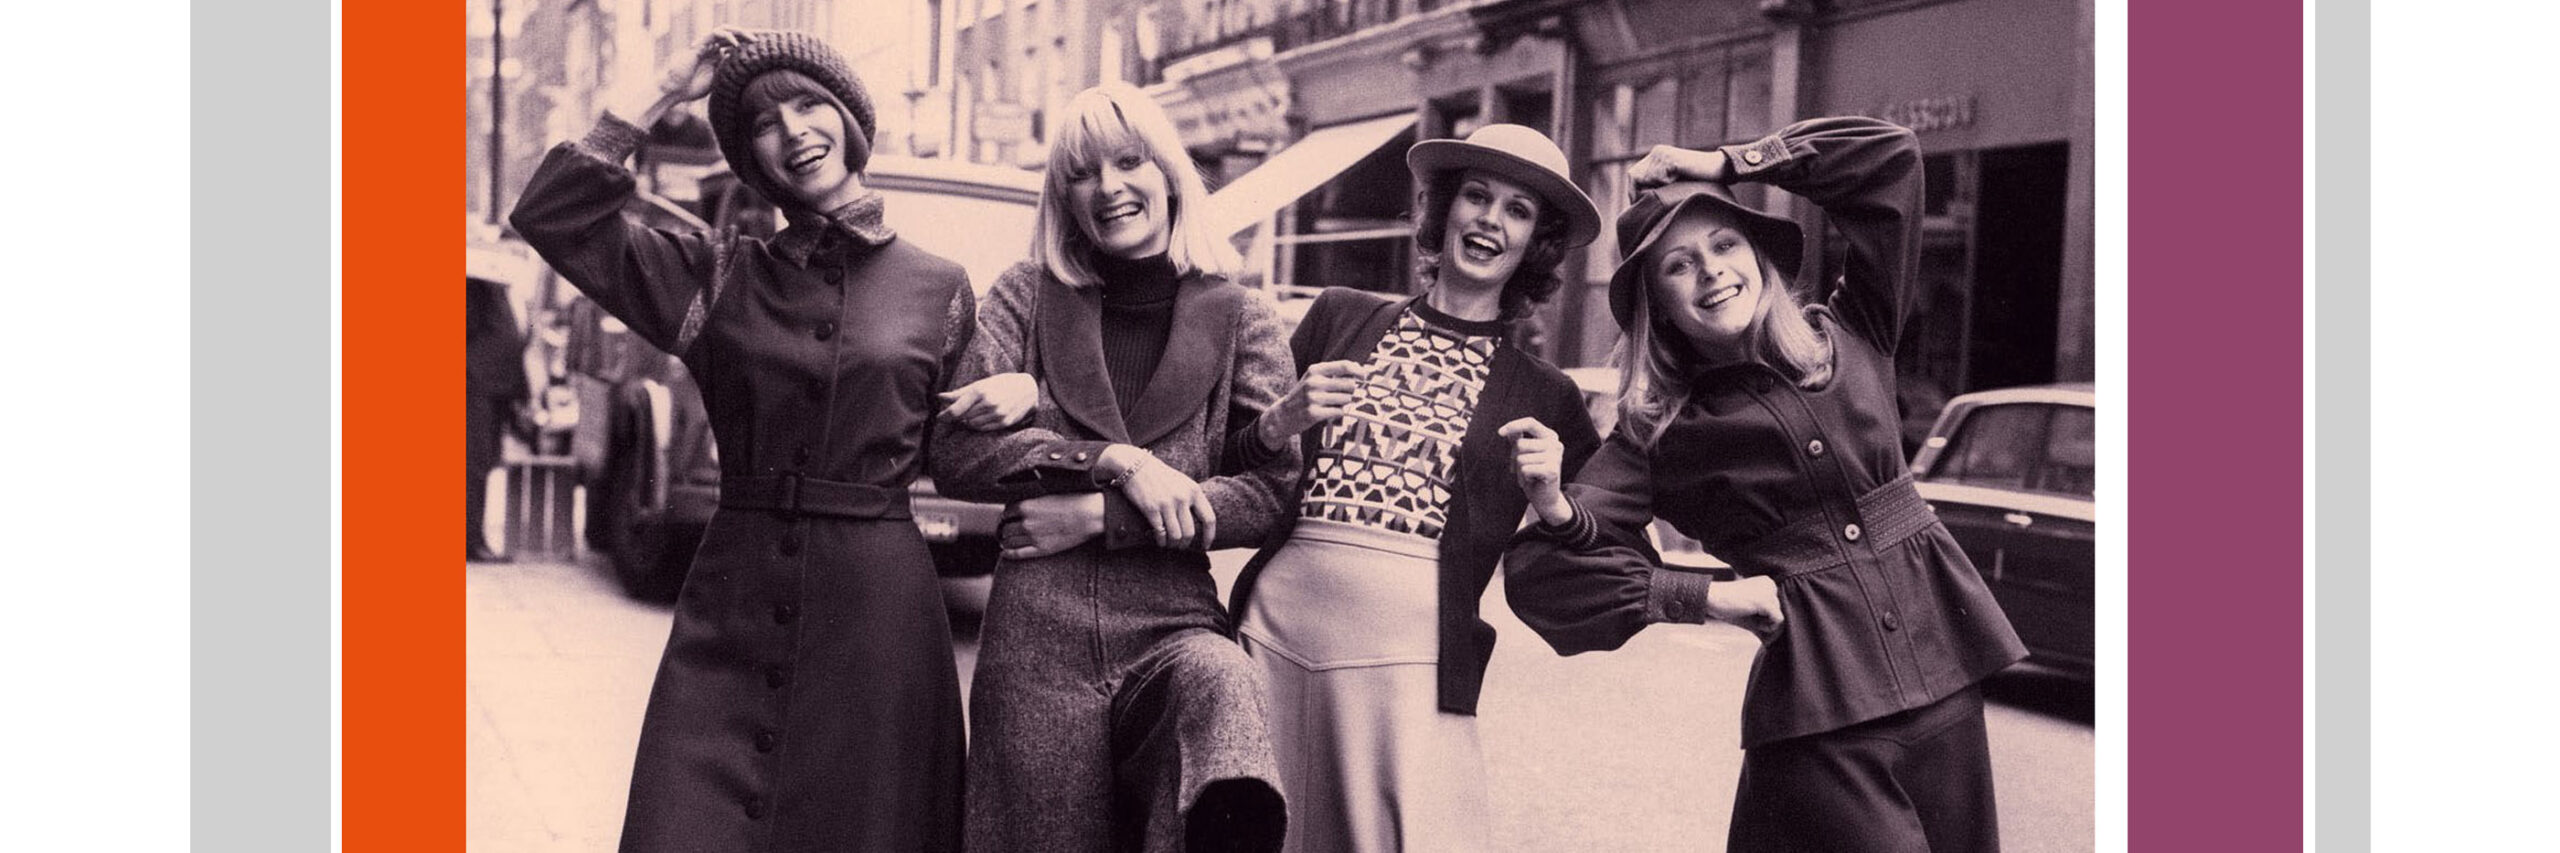 1970s photo of four girls in London street wearing fashions of the time